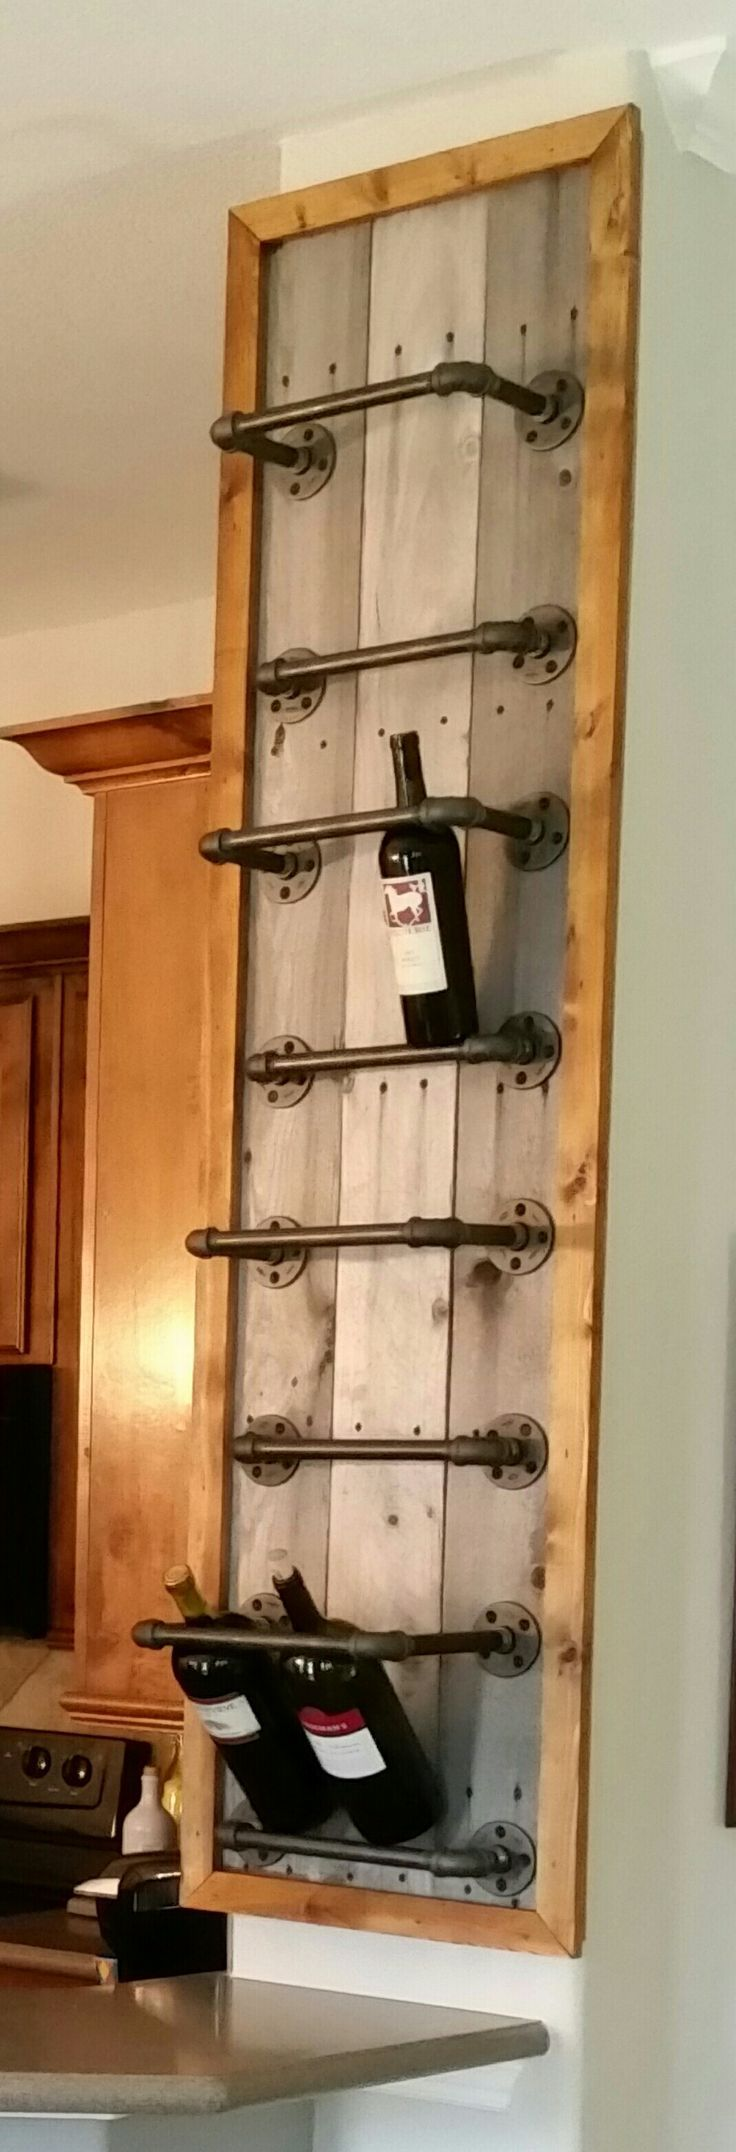 Design Diy Wine Rack best 25 diy wine racks ideas on pinterest rack inspiration bottle and cheap racks